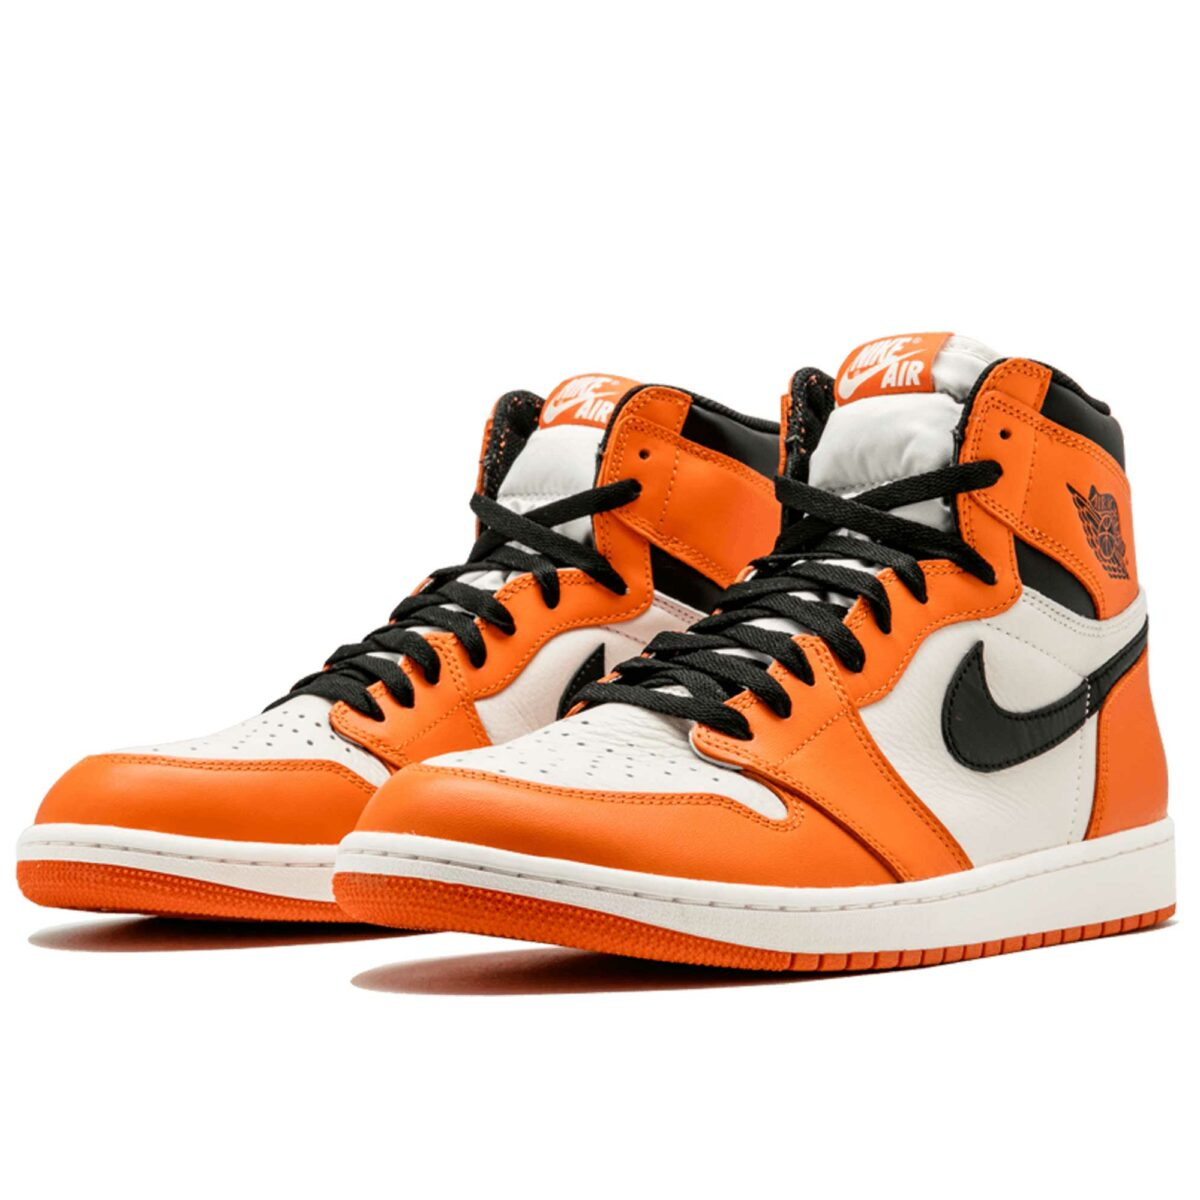 nike air Jordan 1 retro high og orange 555088_113 купить